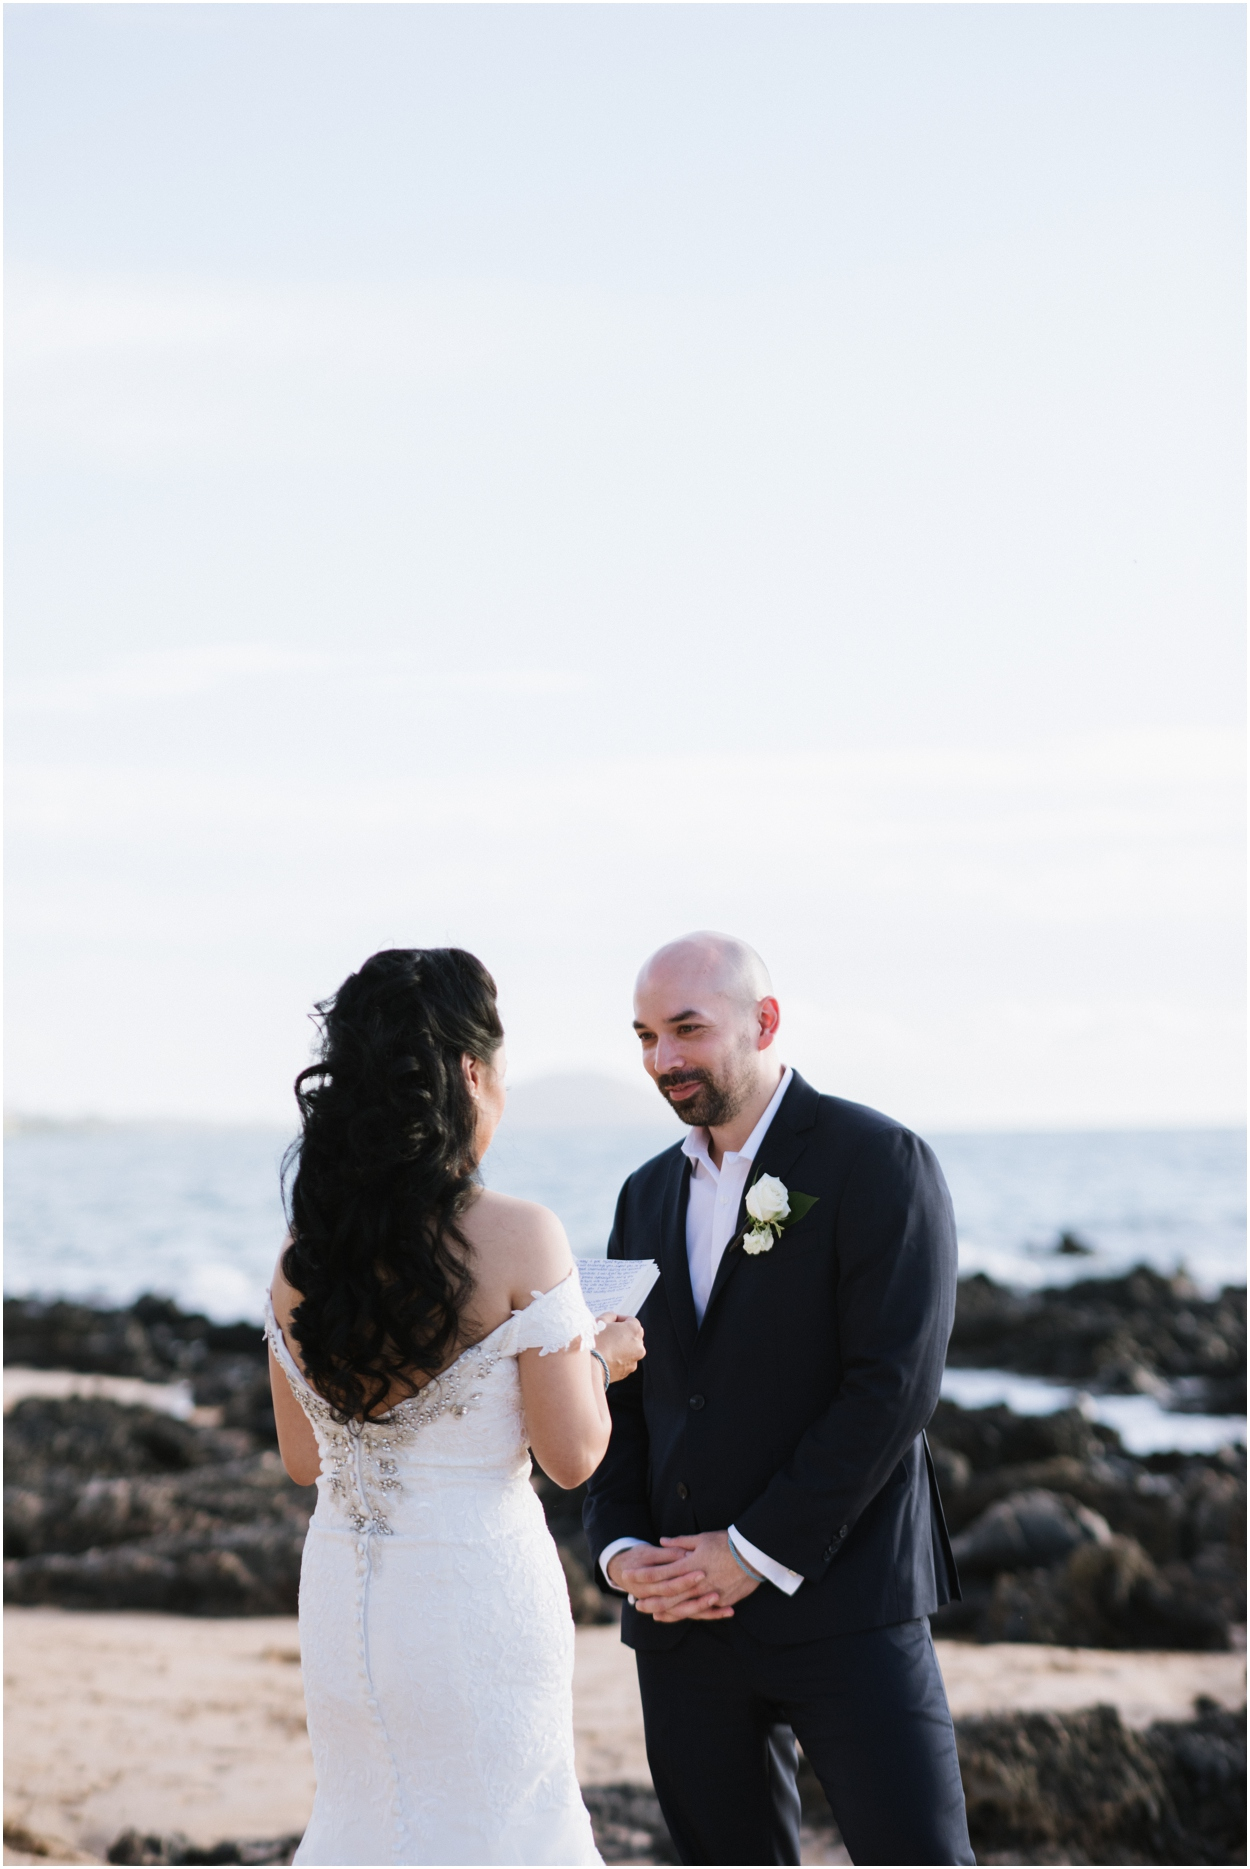 Maui Elopement Photographer_0026.jpg